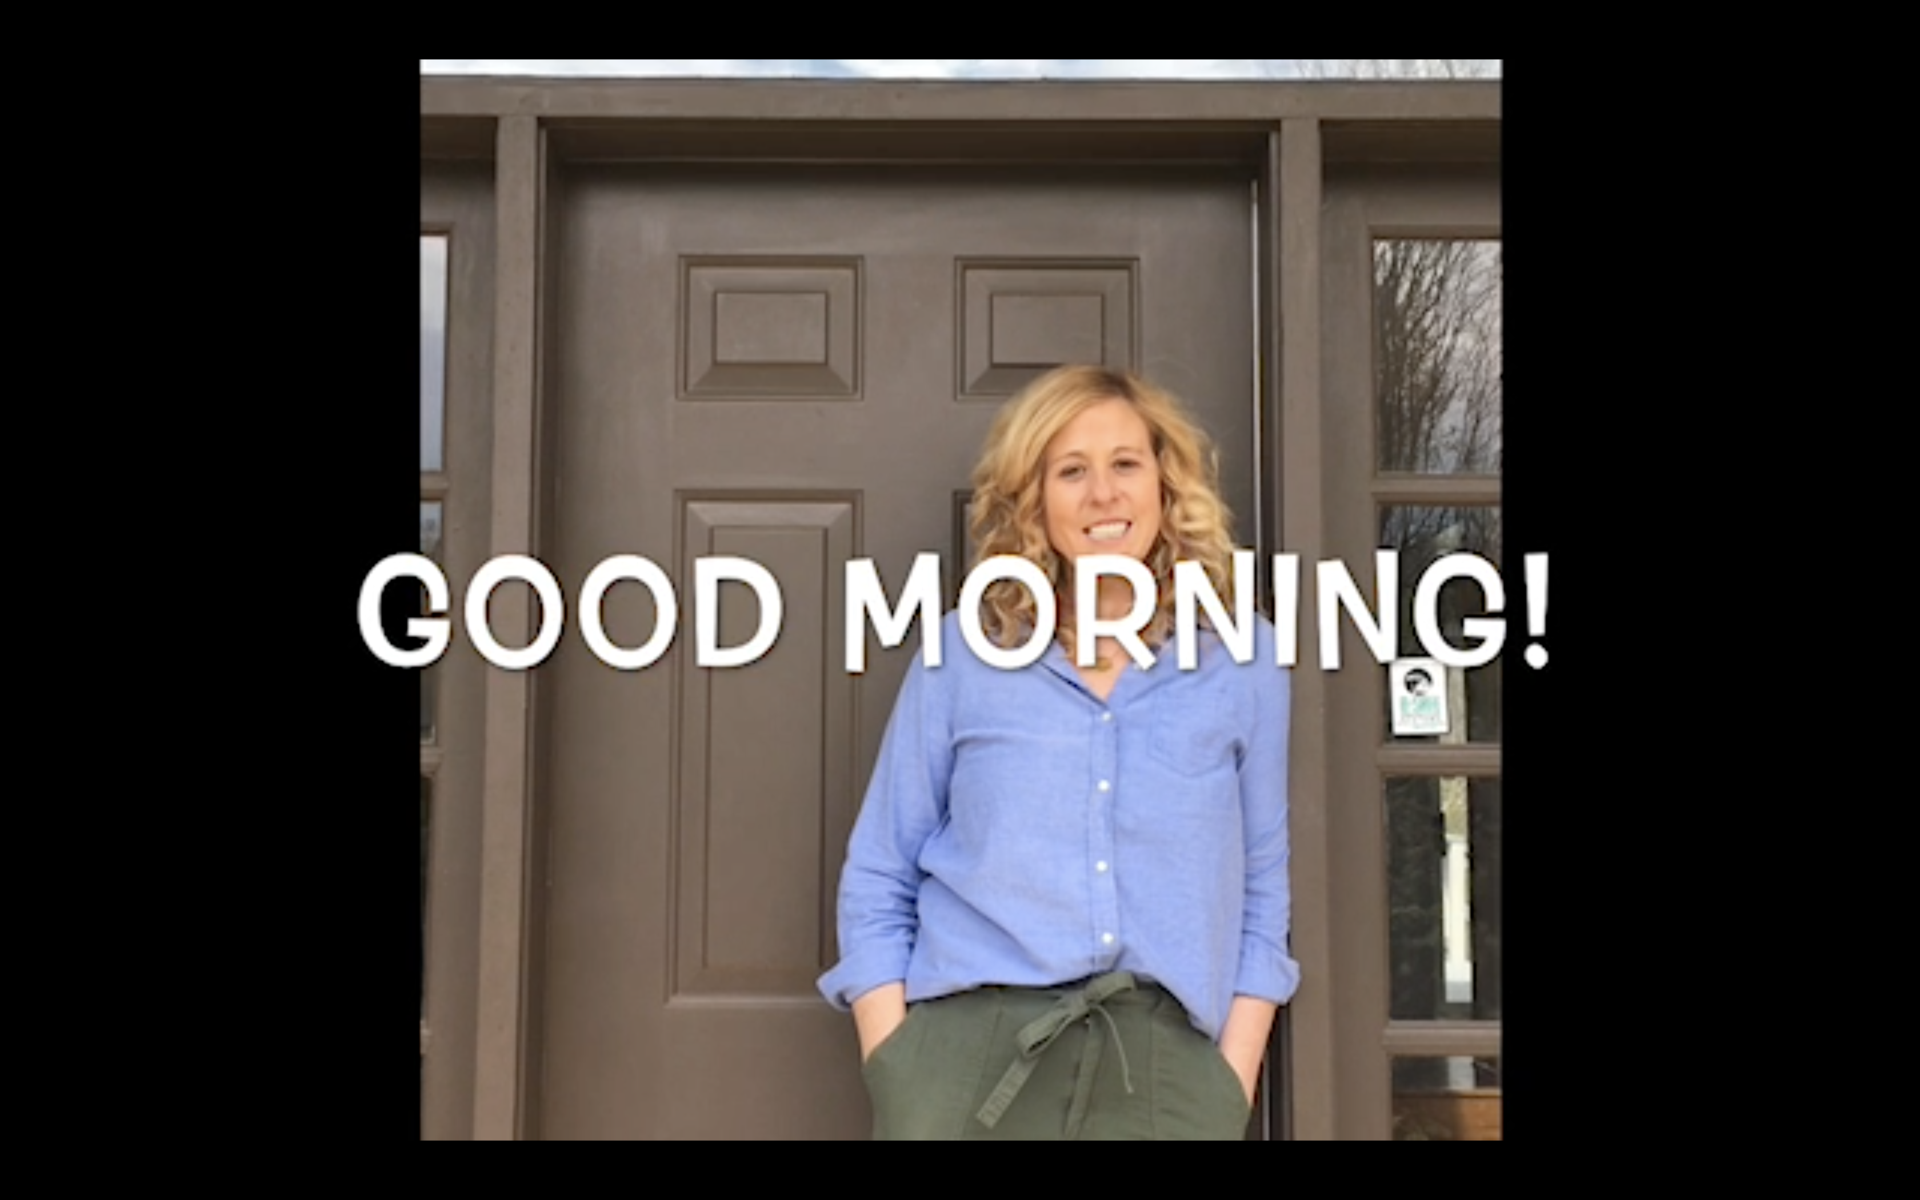 Daily 'Morning Minute' videos from teachers and administrators